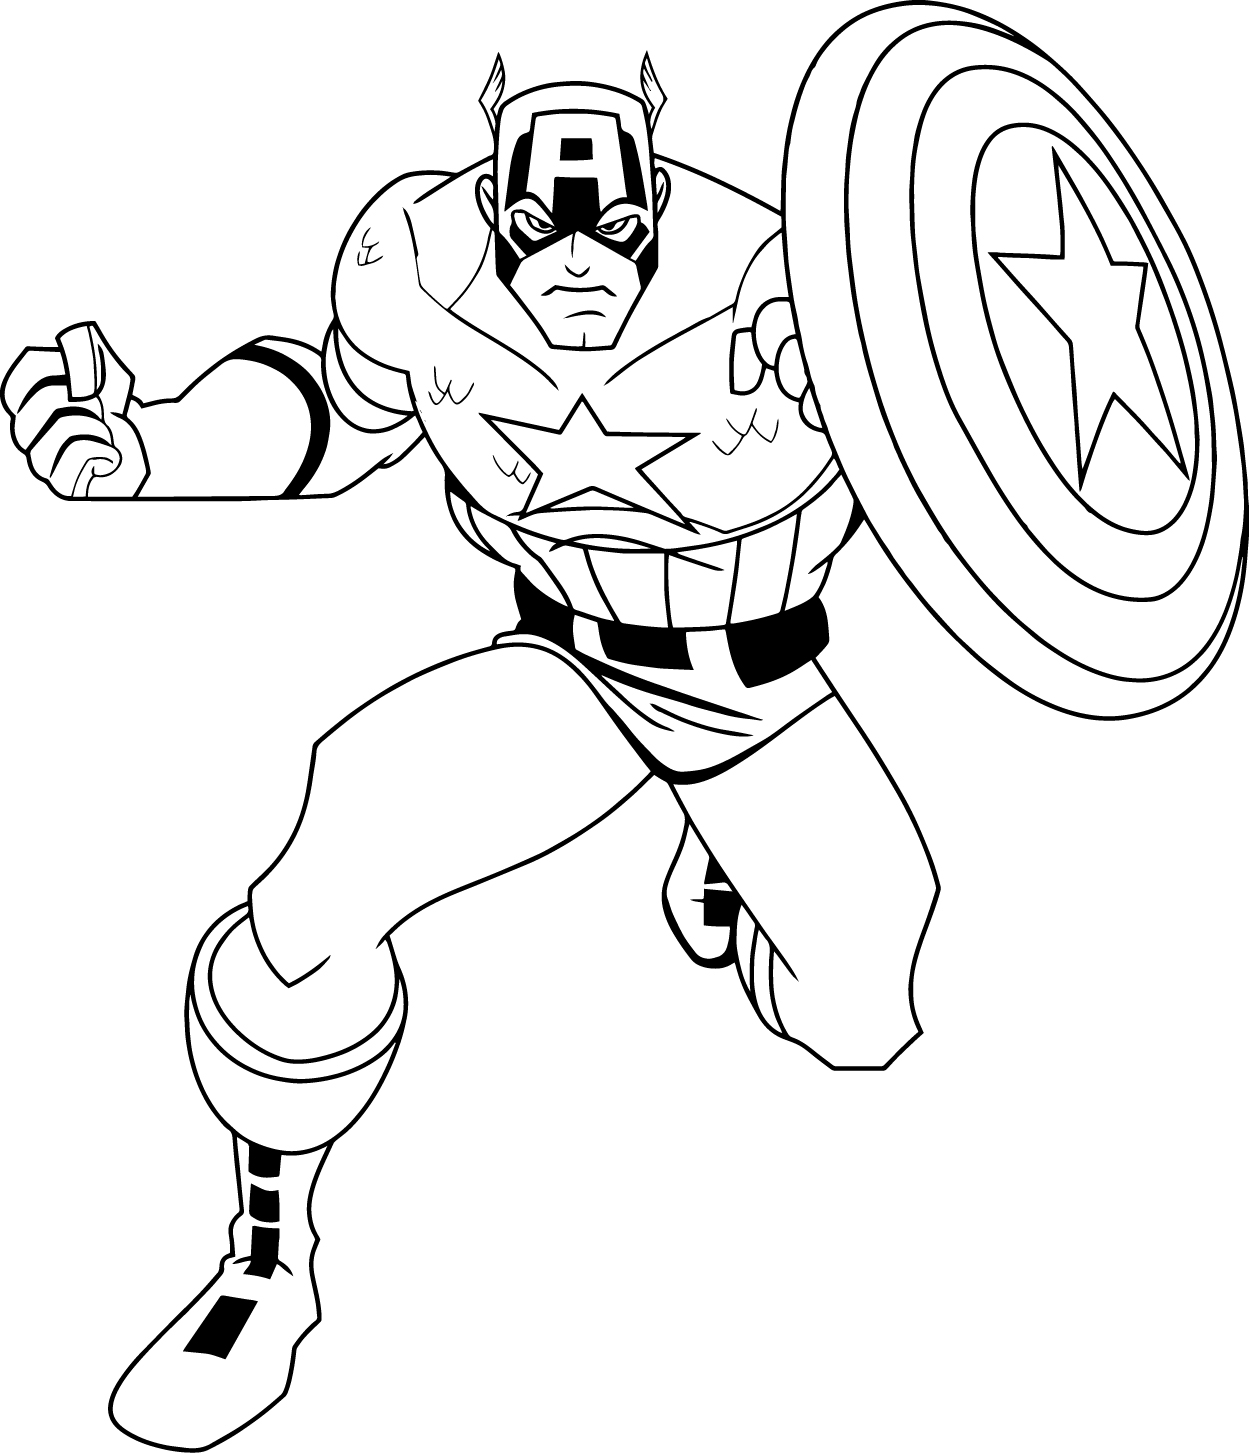 captain america coloring free printable captain america coloring pages for kids america captain coloring